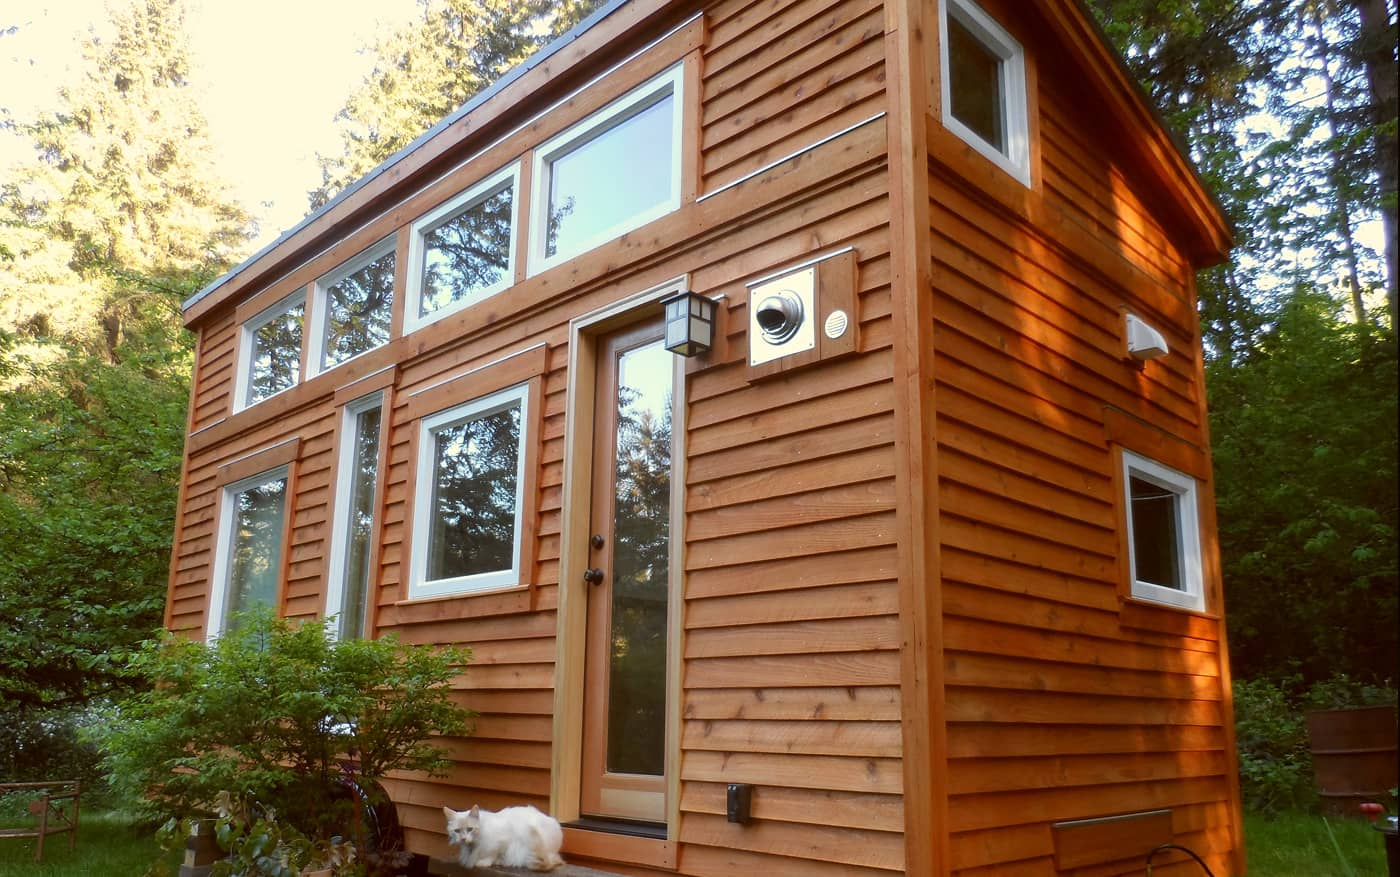 Fullsize Of Tiny Homes For Sale Oregon